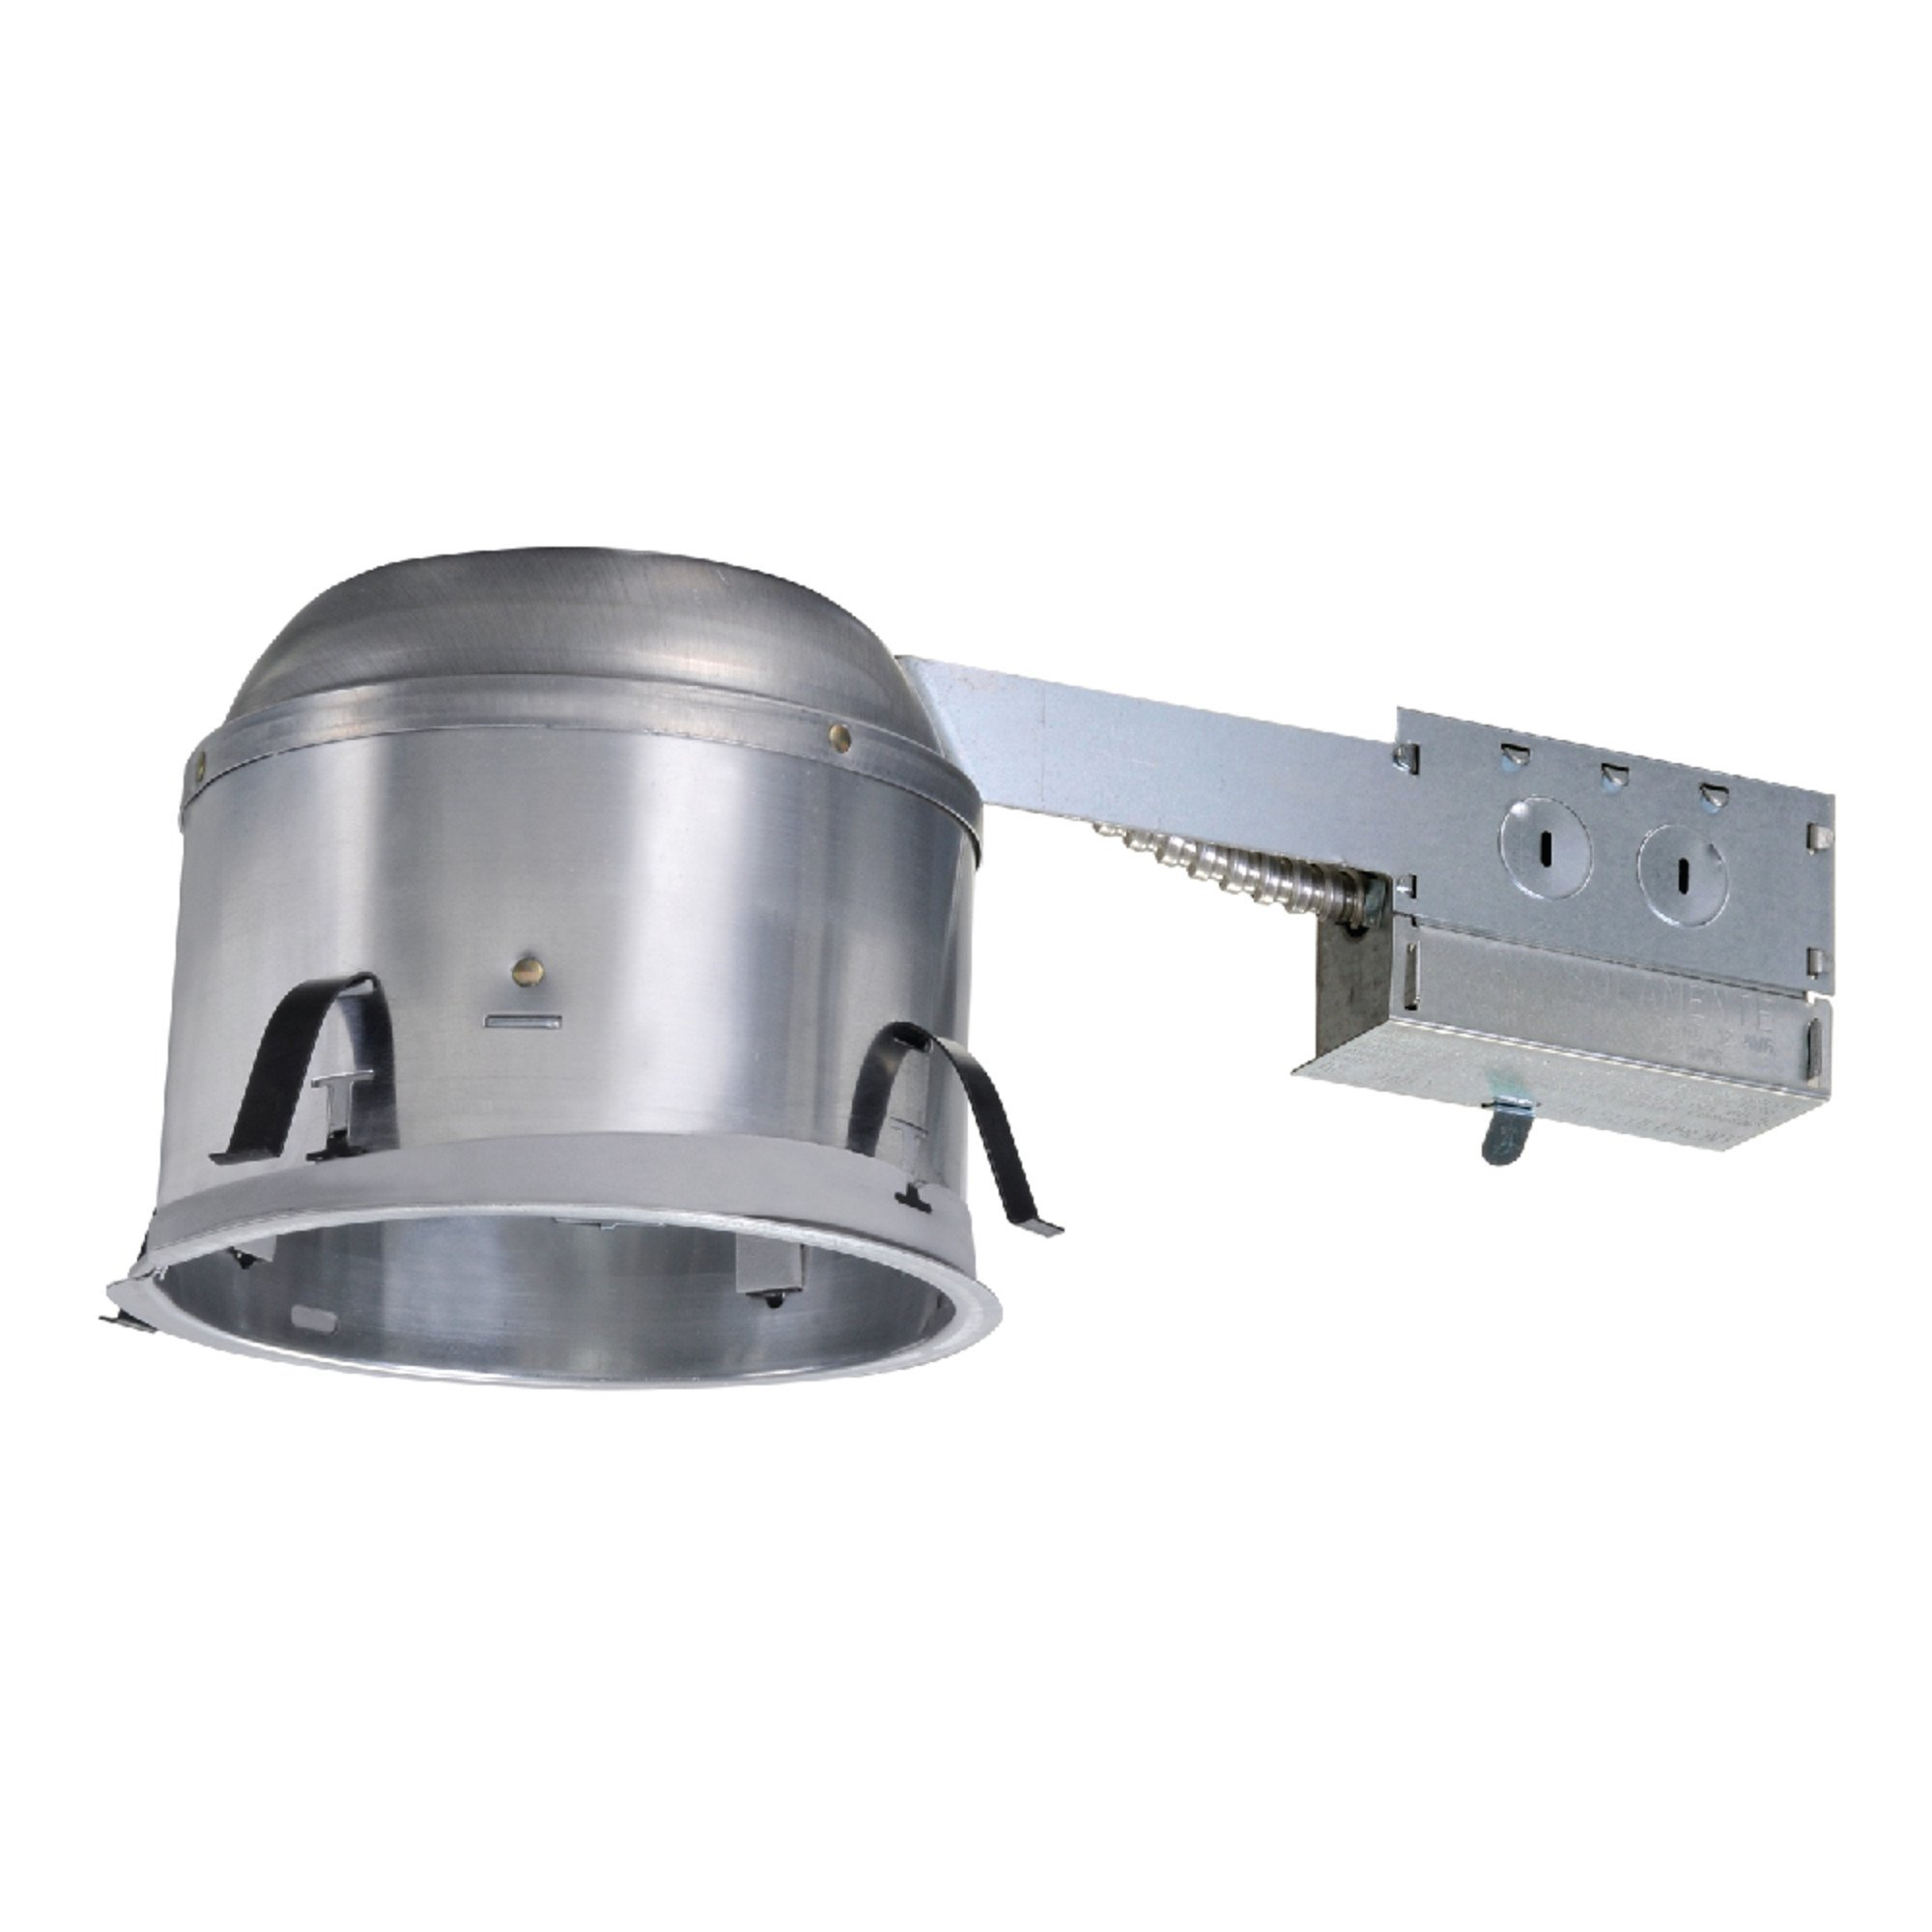 HALO H27RICAT Recessed Lighitng Remodel IC Air-Tite Shallow Housing, 6'', Aluminum